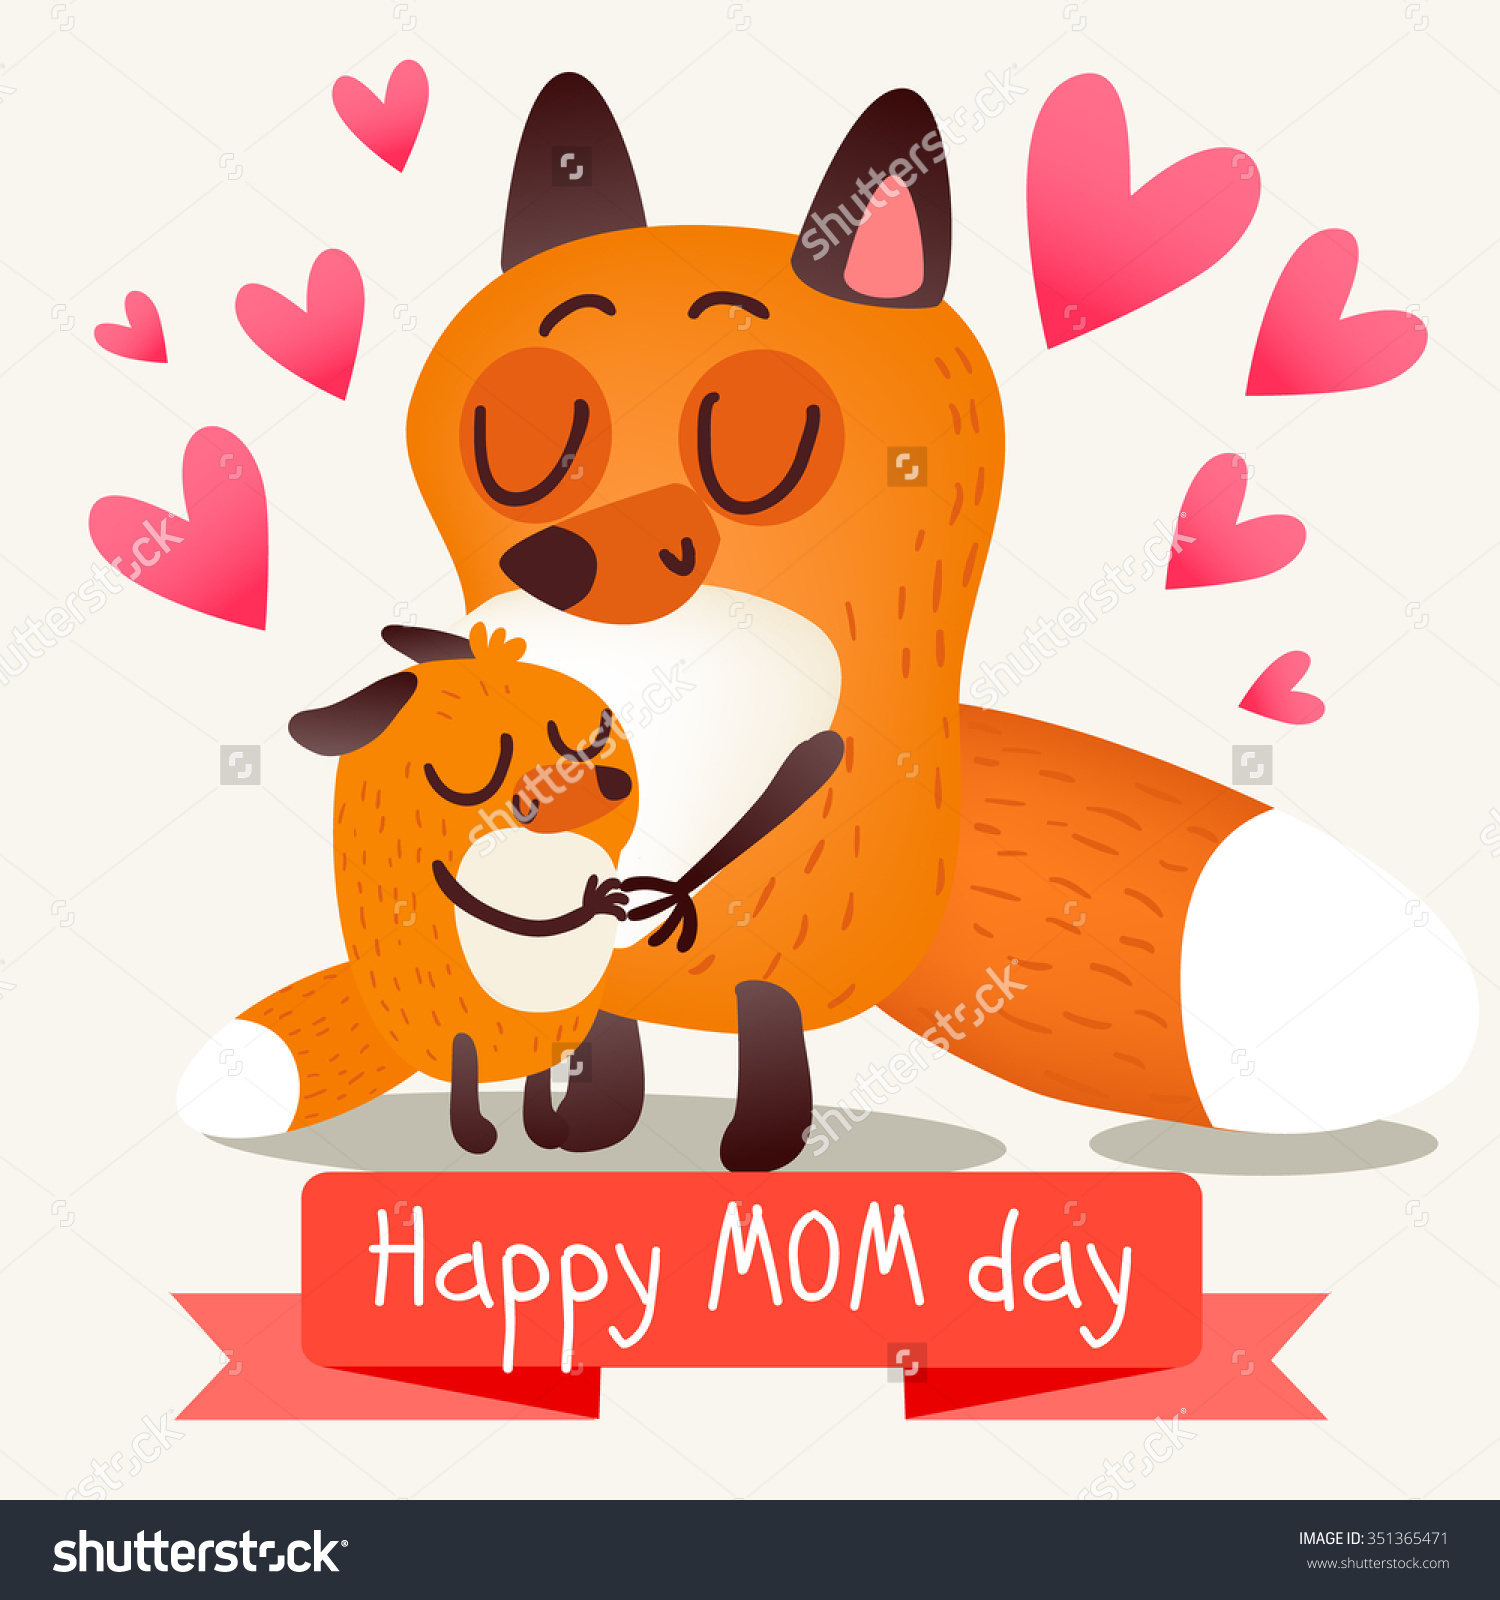 Greeting Card Mothers Day Foxes Warm Stock Vector 351365471.